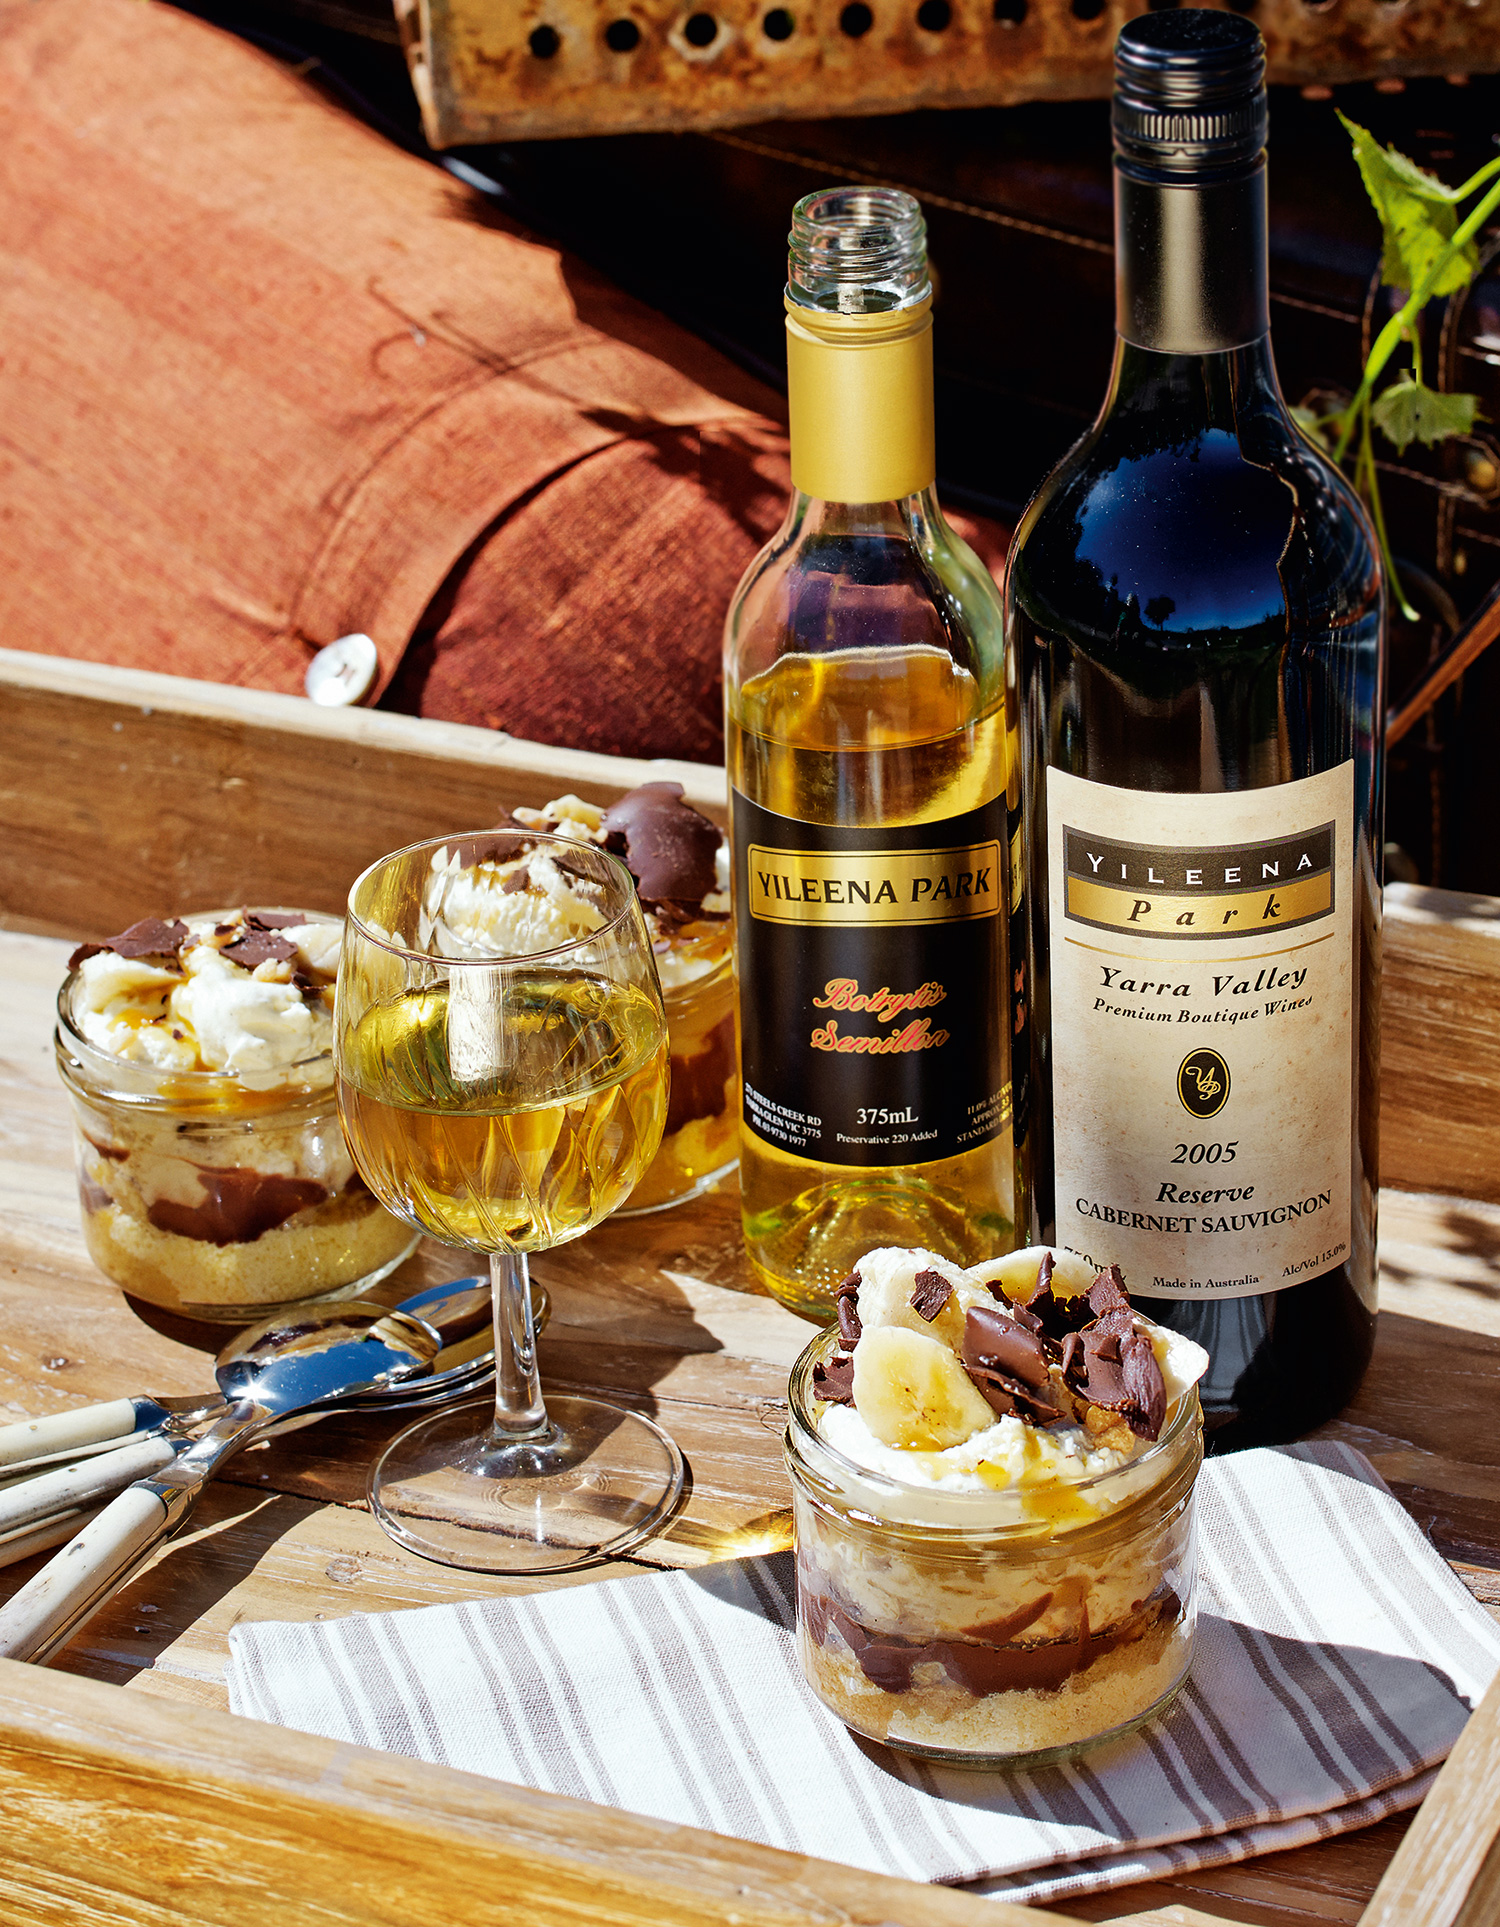 Baby Banoffee Pies with Yileena Park Botrytis Semillon